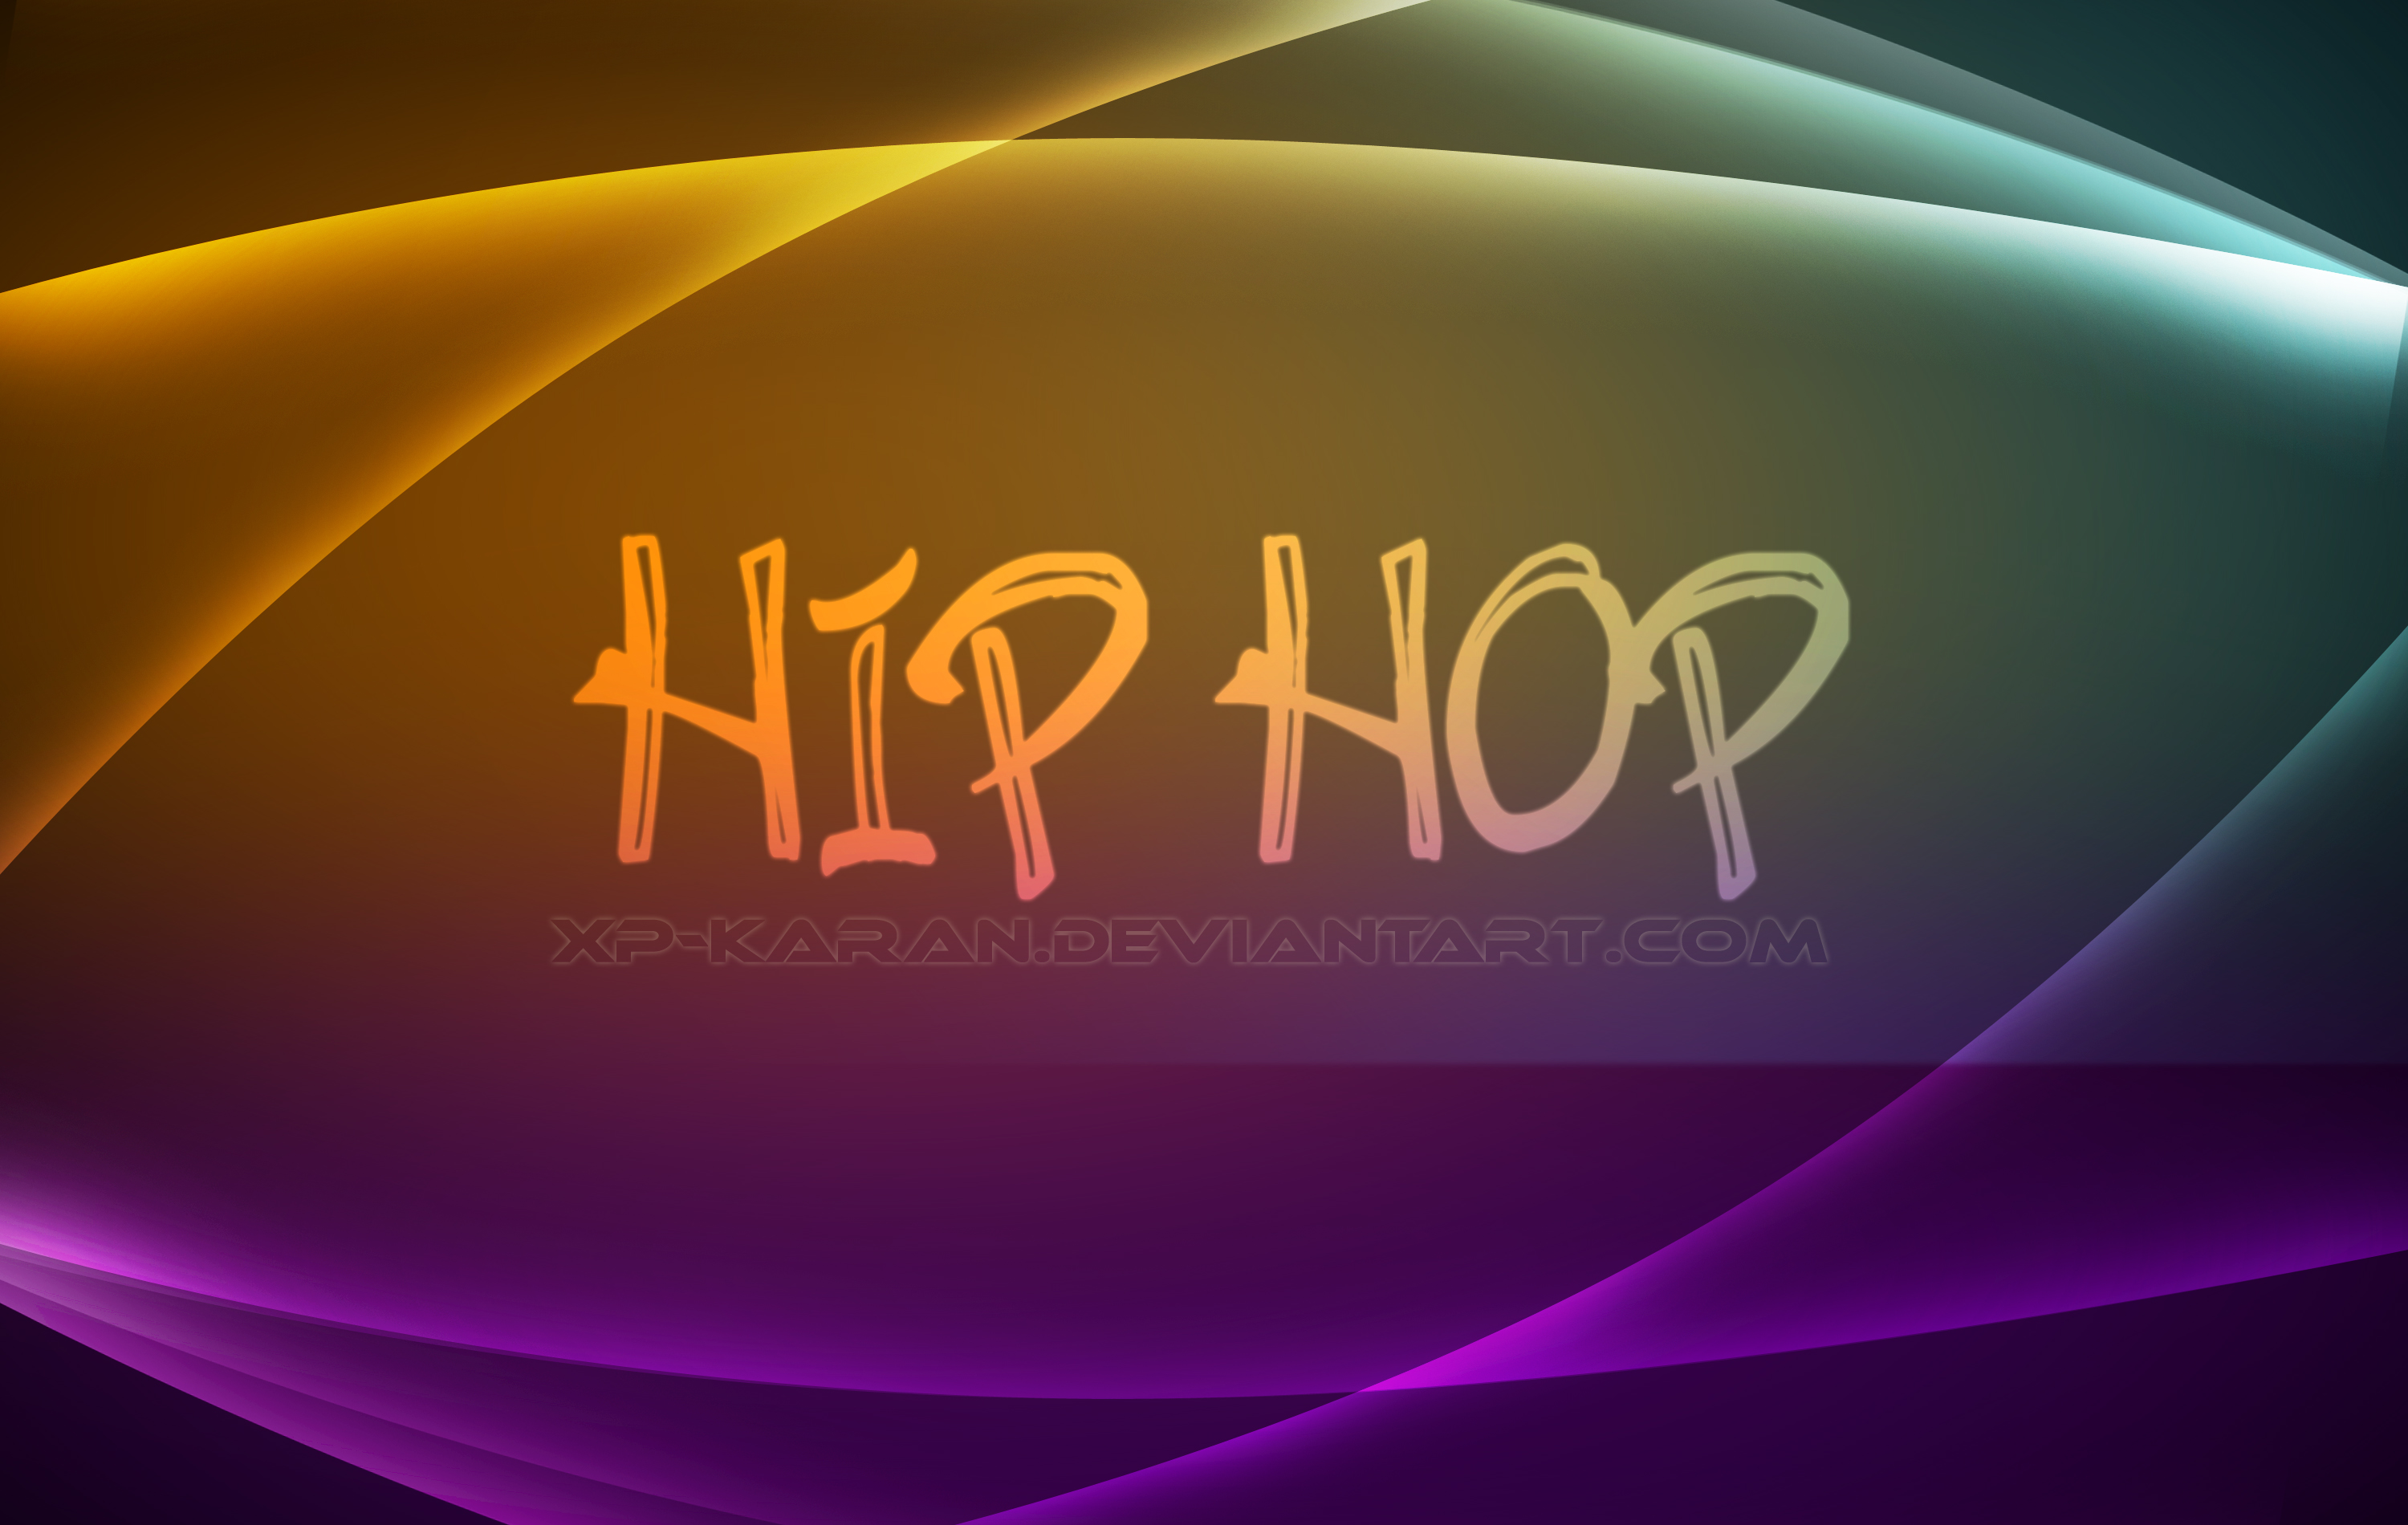 Hip Hop Music Wallpaper by xp karanjpg 3000x1900